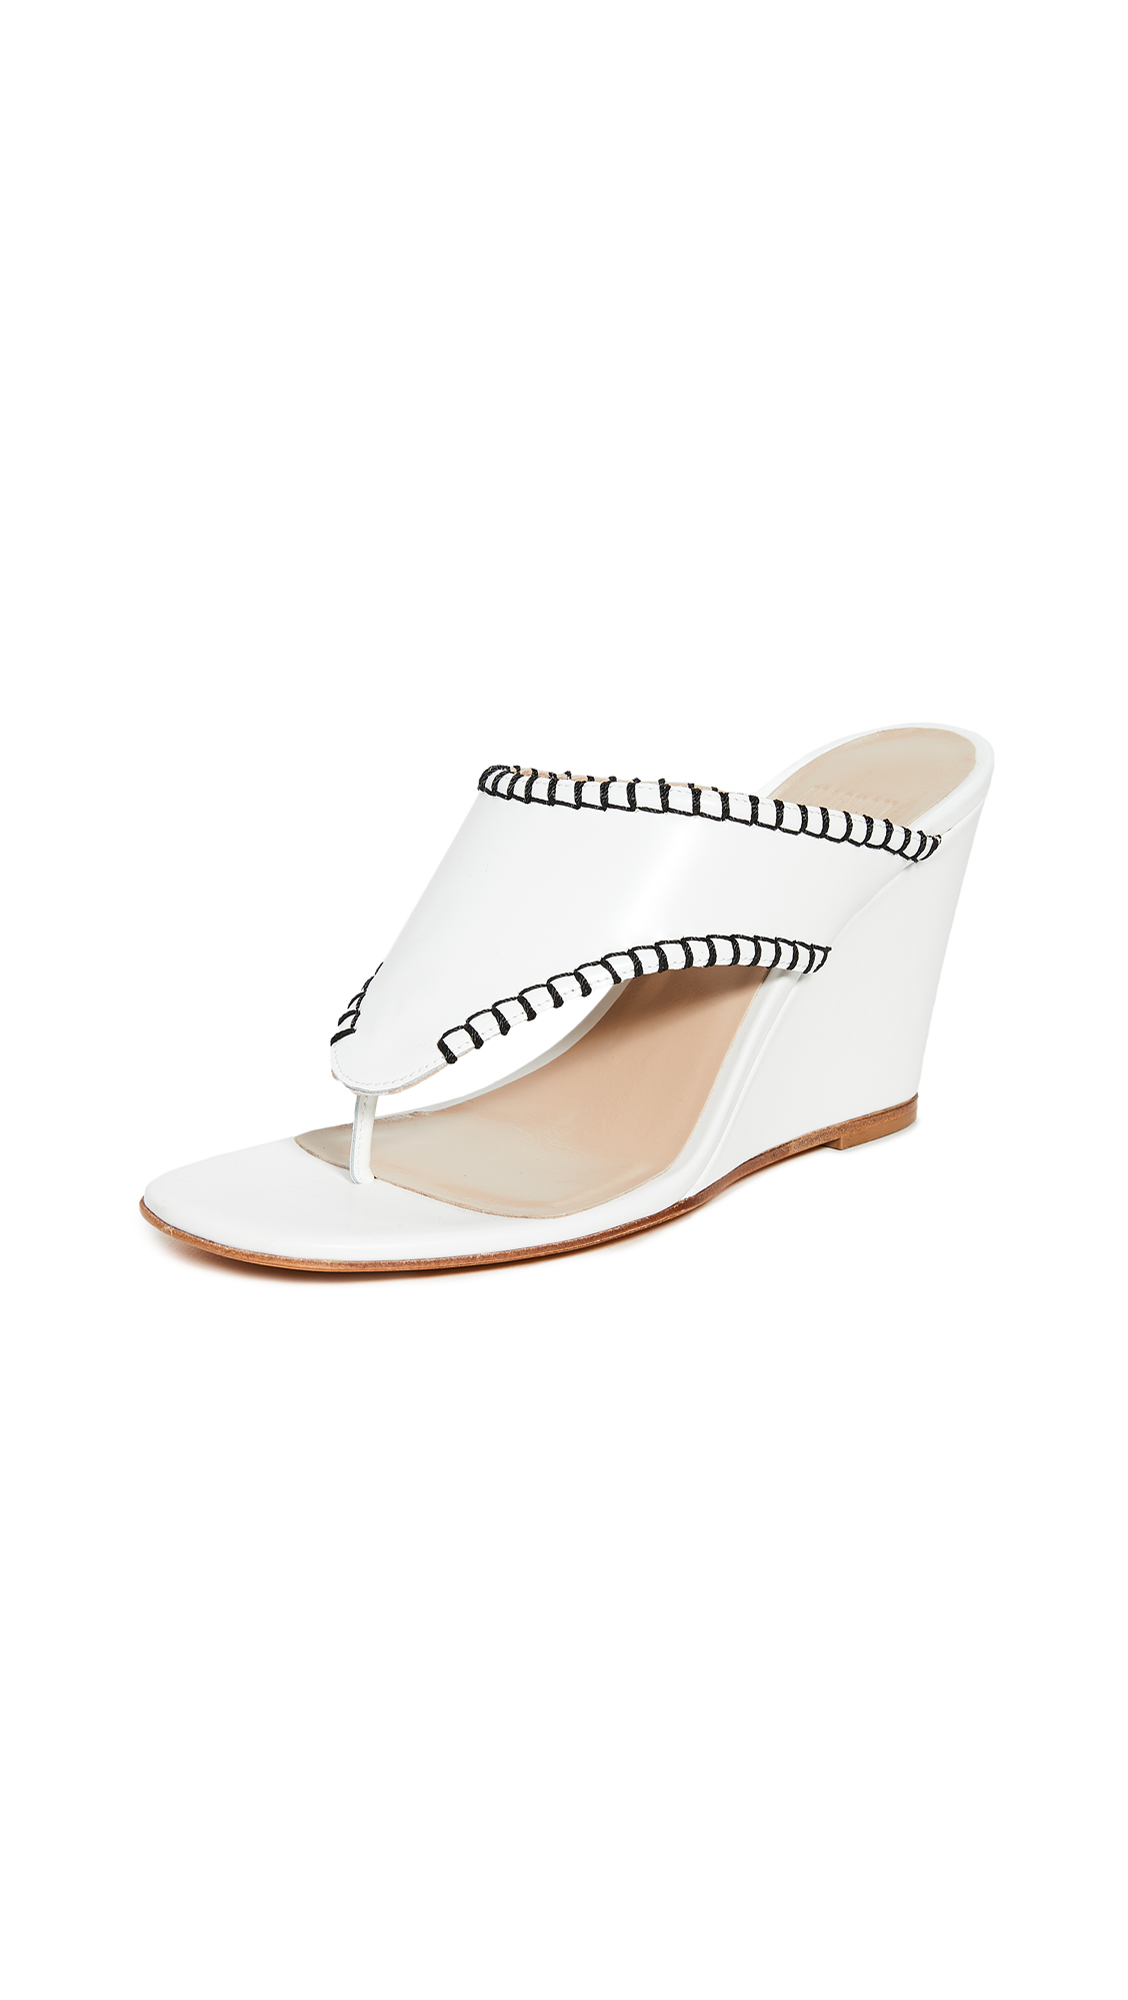 Maryam Nassir Zadeh Talia Thong Sandals - 60% Off Sale